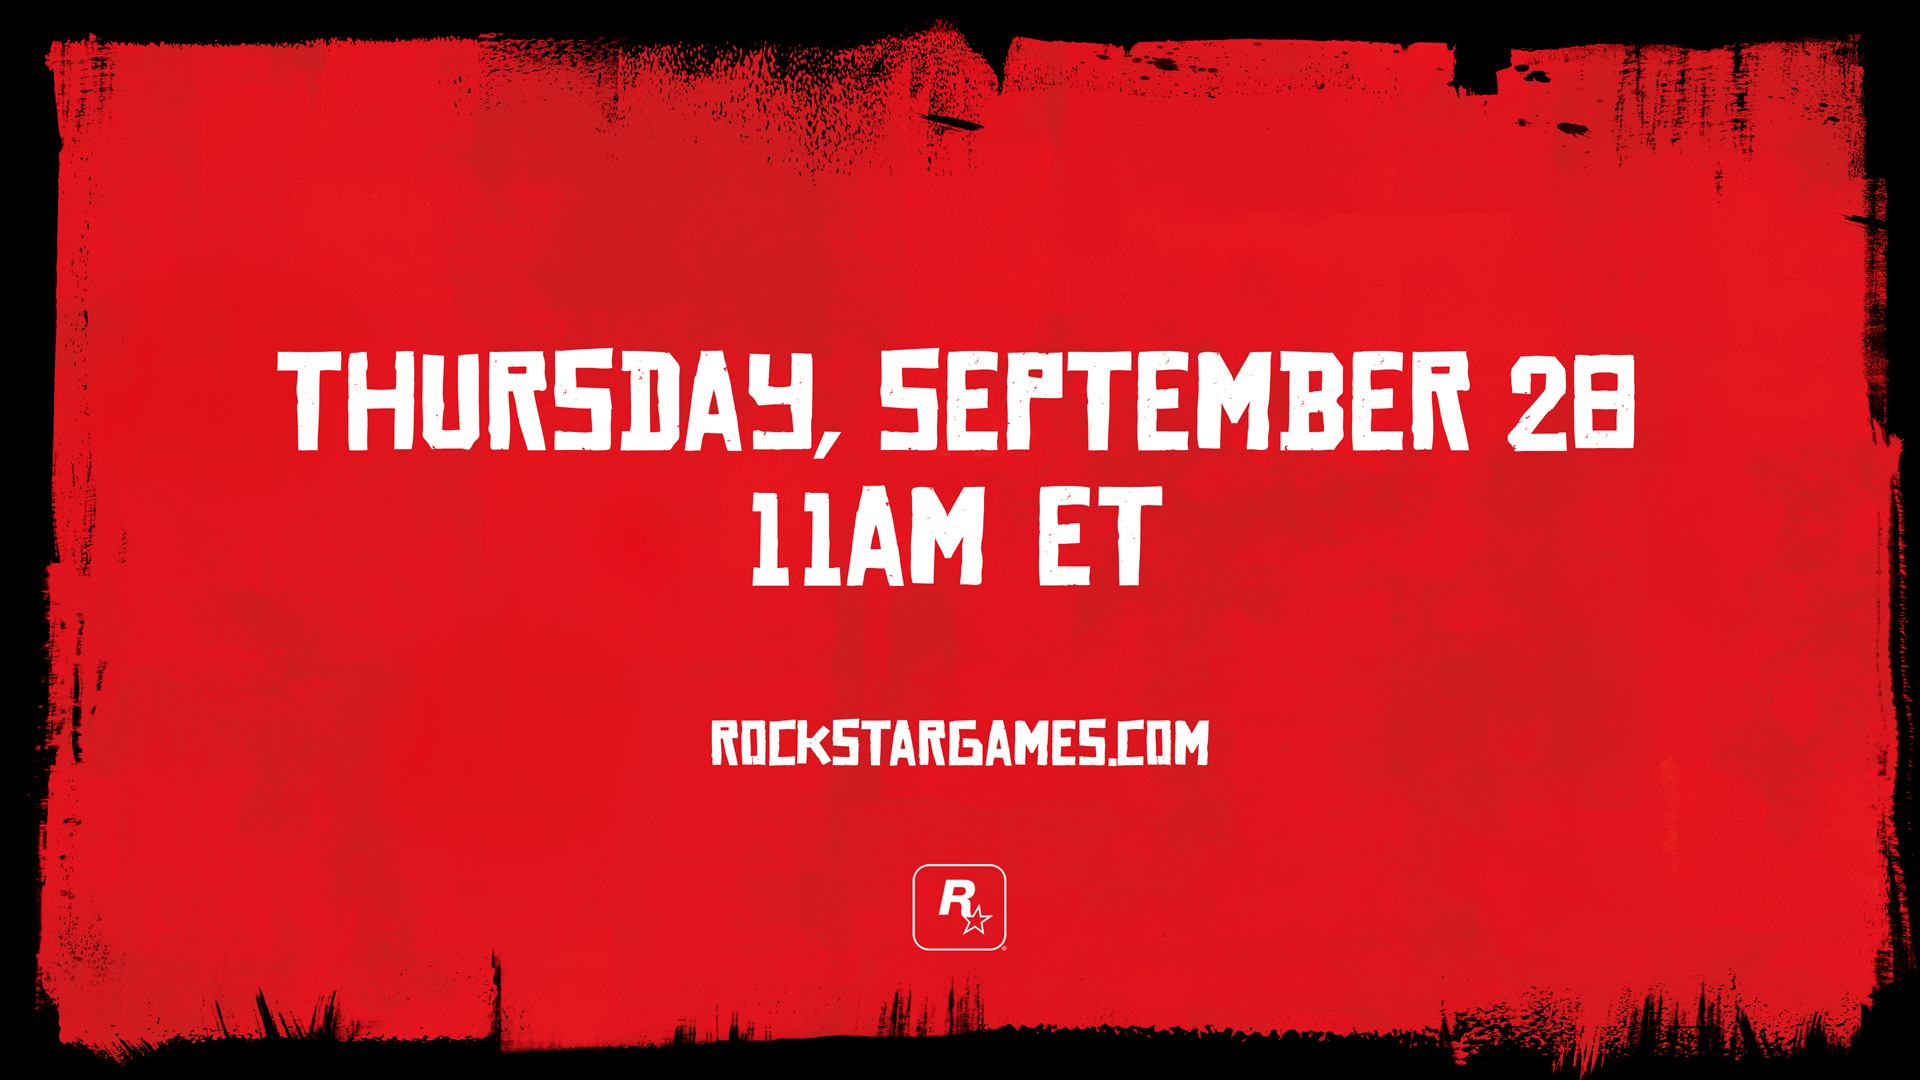 Rockstar teases Red Dead Redemption 2 announcement